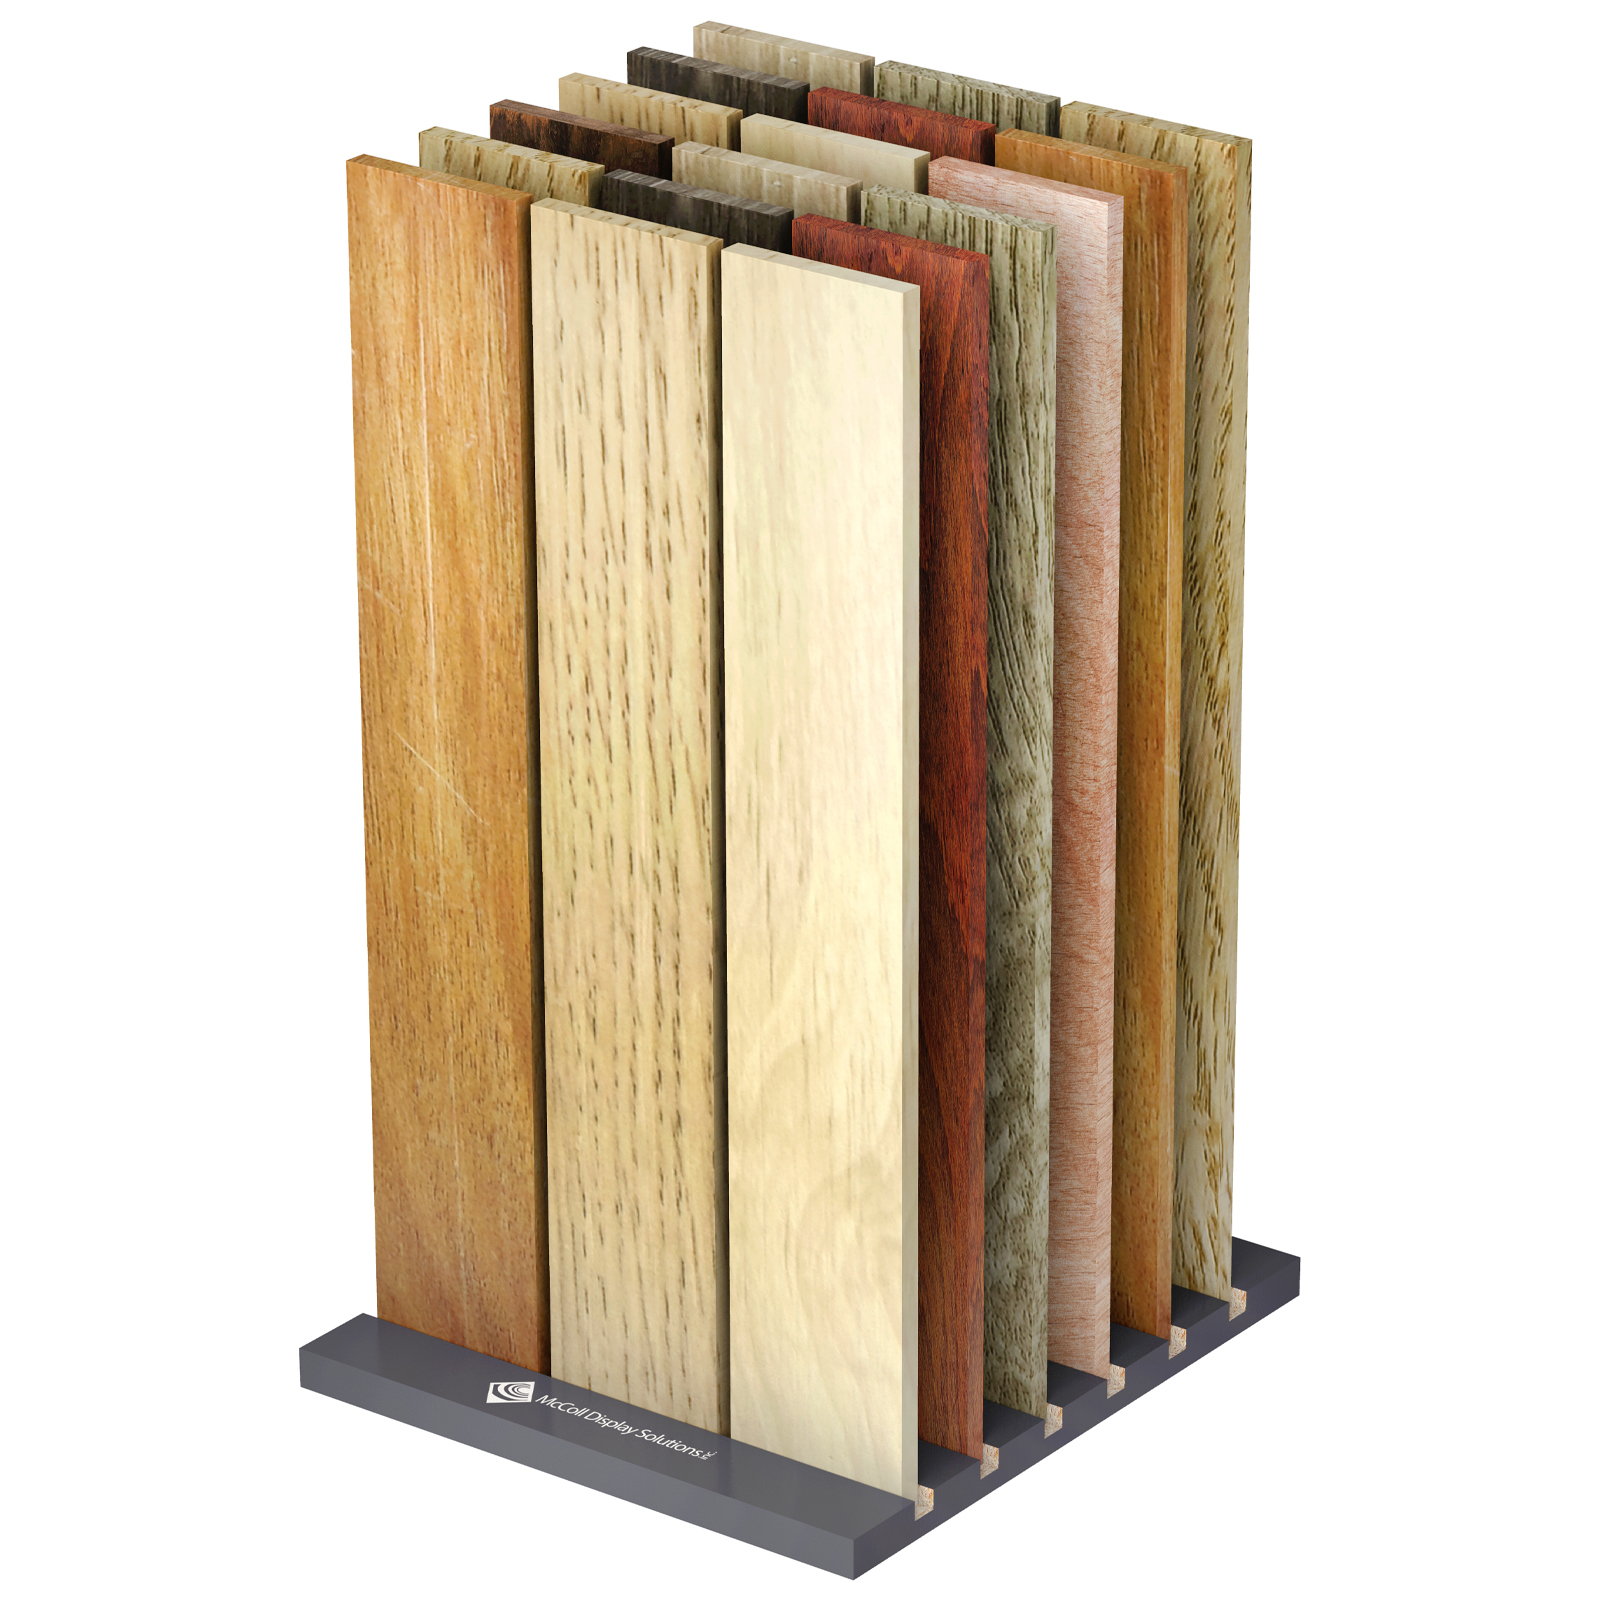 Floor or Counter or Tabletop Slab Display For Wood Hardwood Laminate Bamboo Reclaimed Plank Flooring Customize Ships Fully Assembled